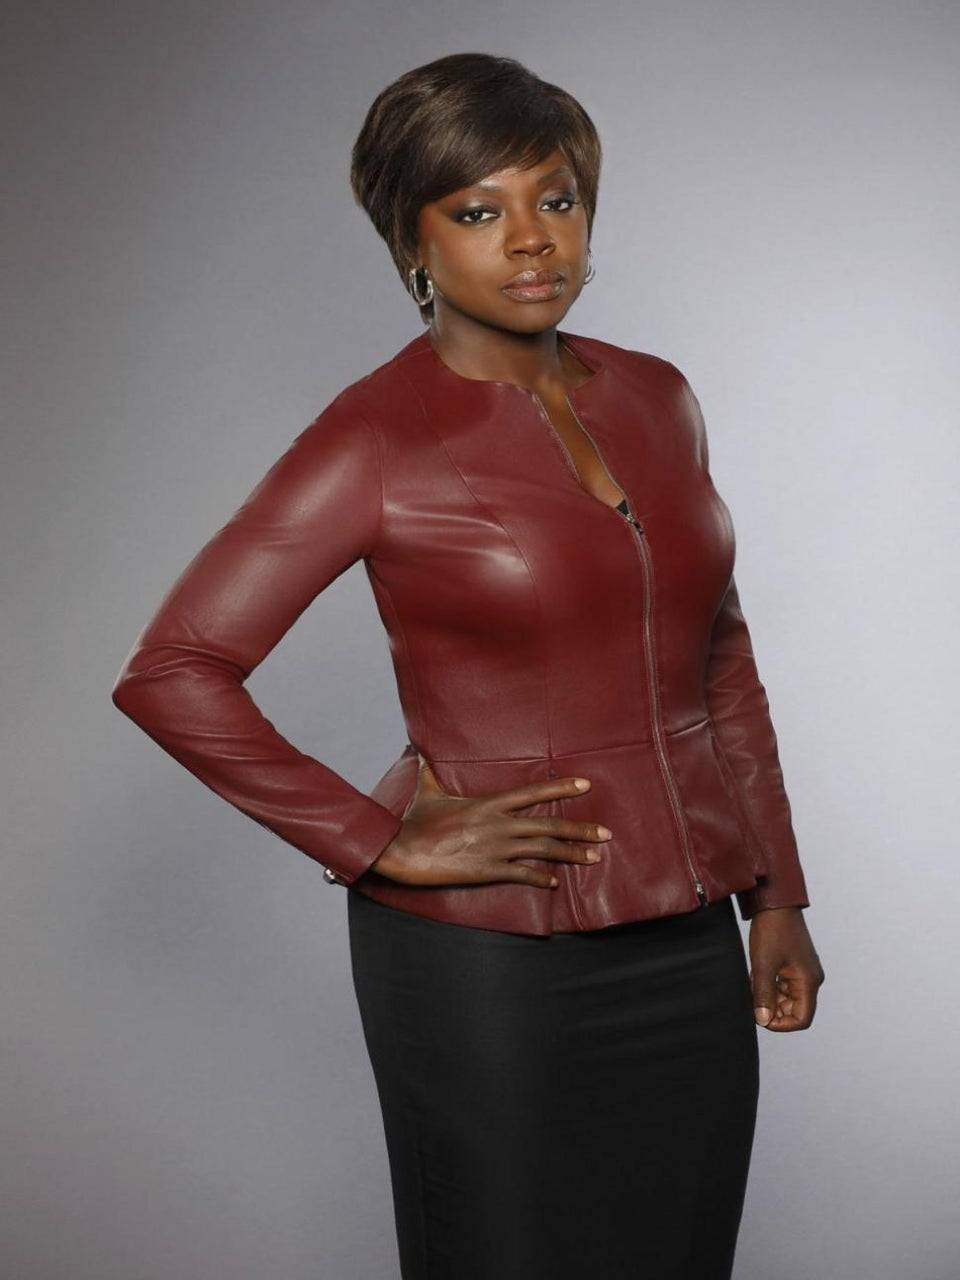 ESSENCE Poll: What Did You Think Of 'How To Get Away With Murder'?